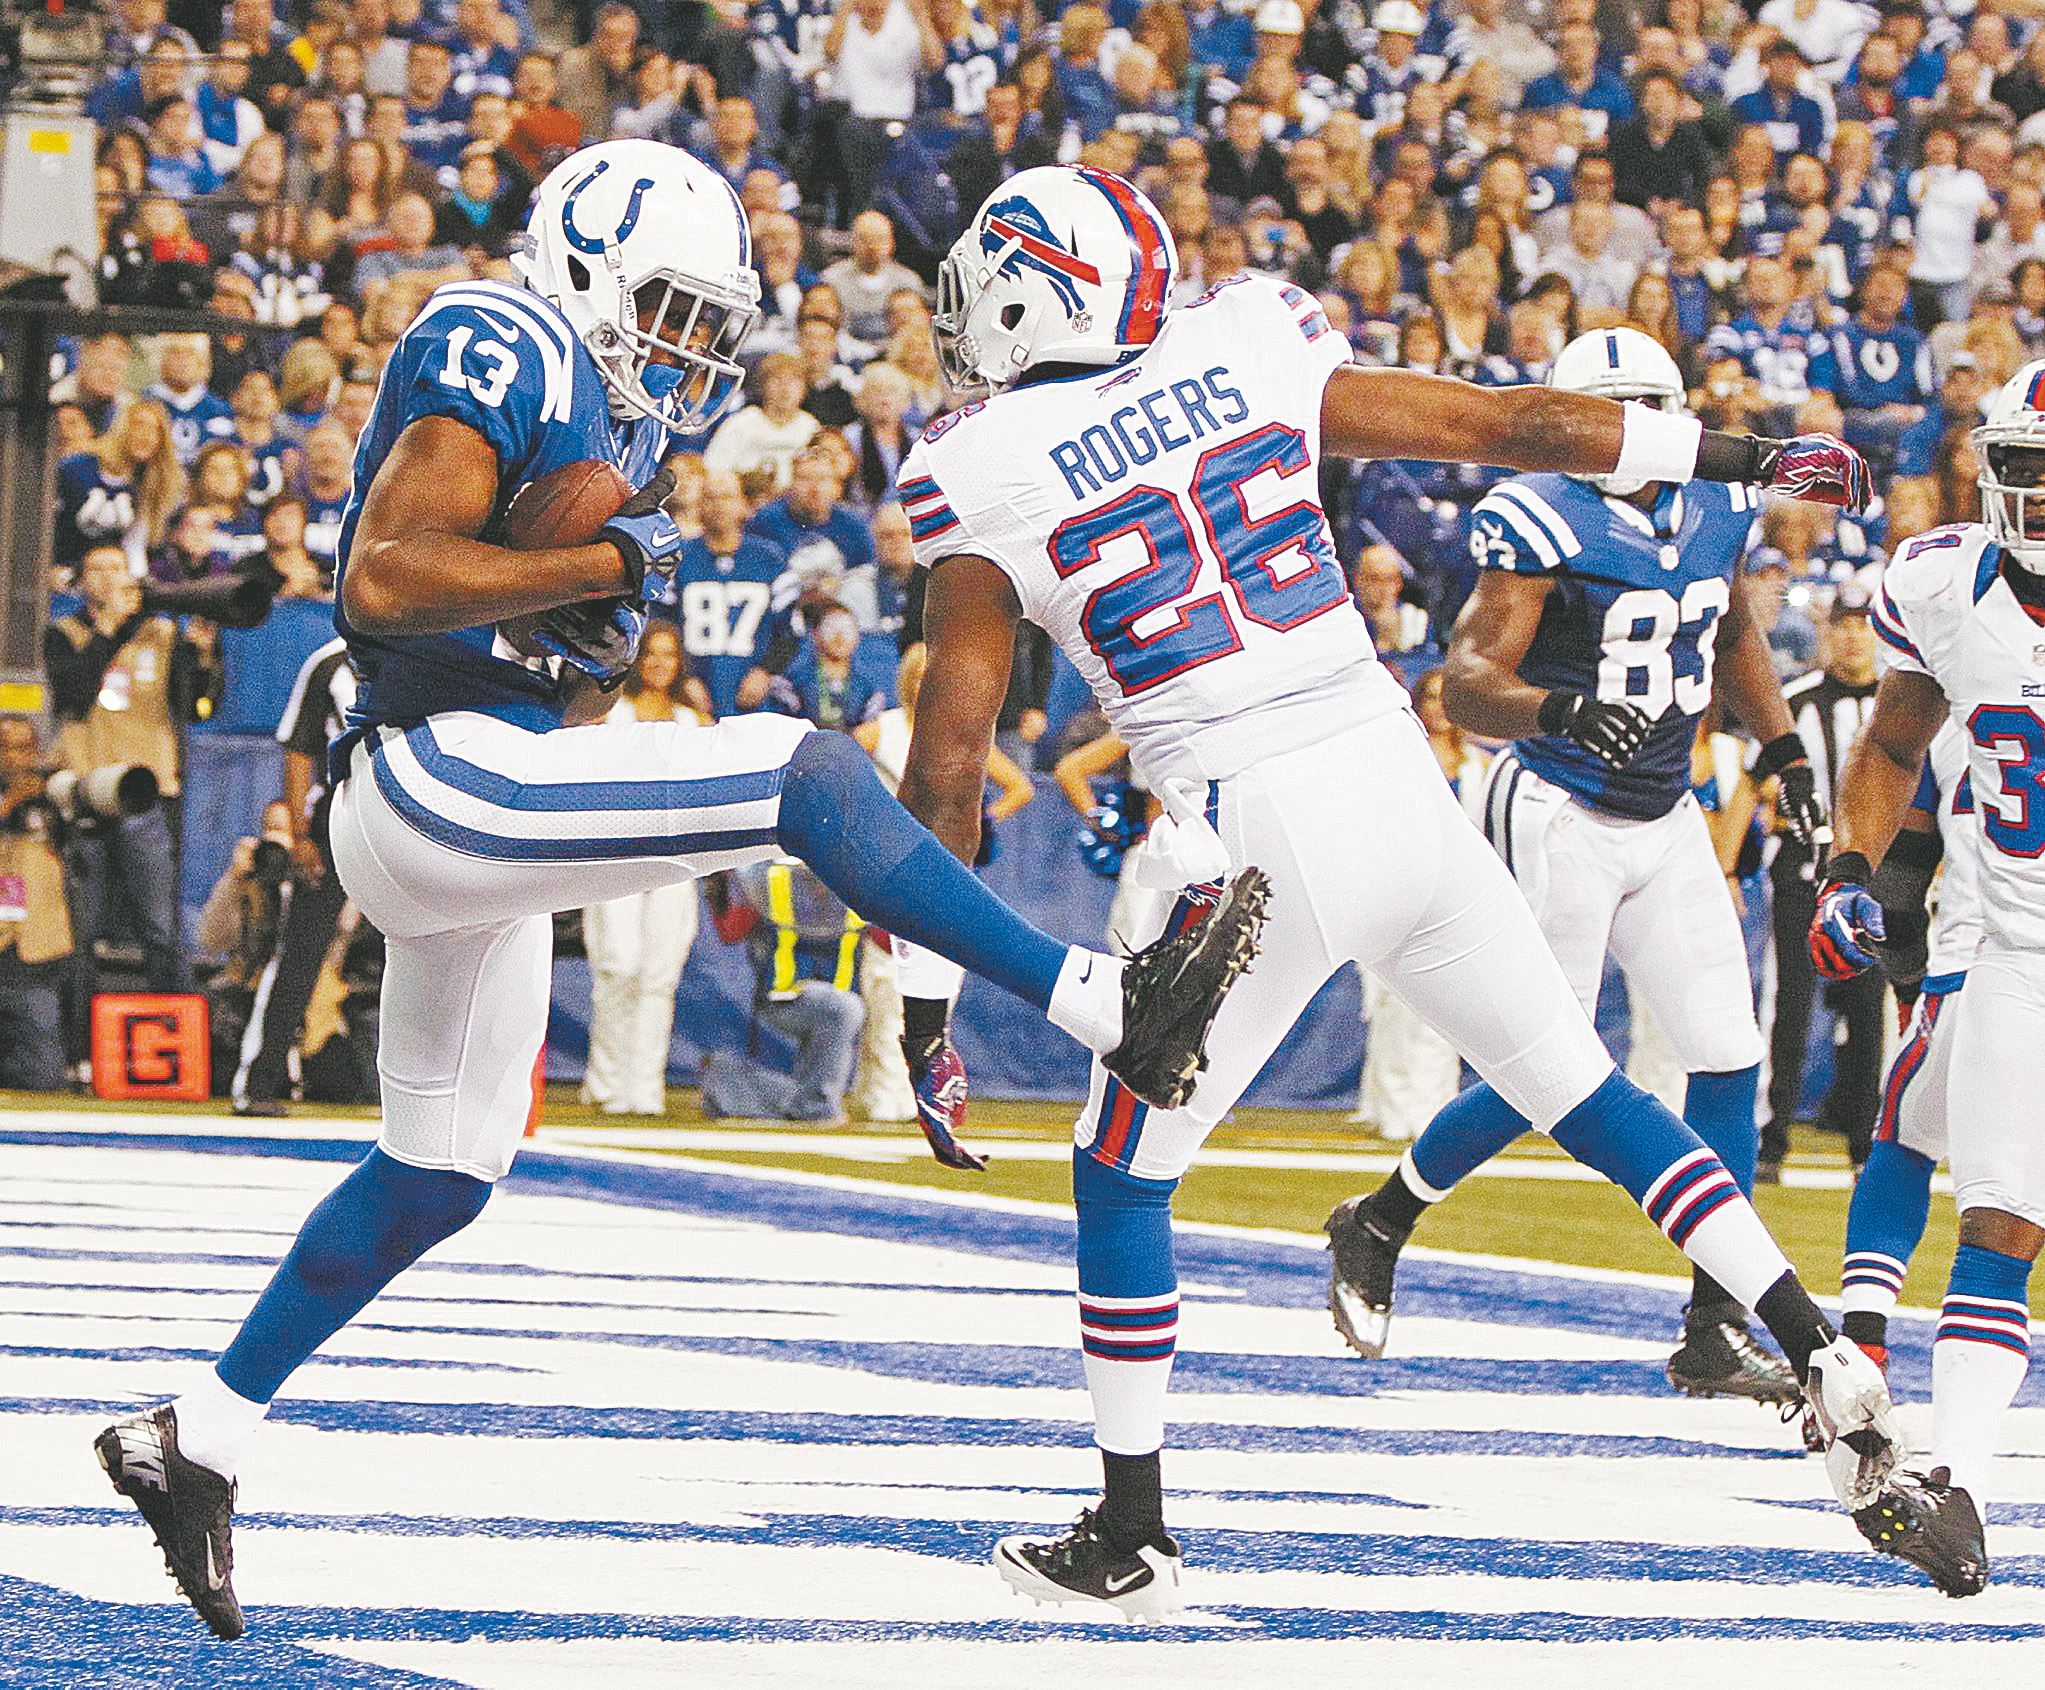 Colts wide receiver T.Y. Hilton pulls in an 8-yard touchdown pass from Andrew Luck behind Bills cornerback Justin Rogers during the third quarter.